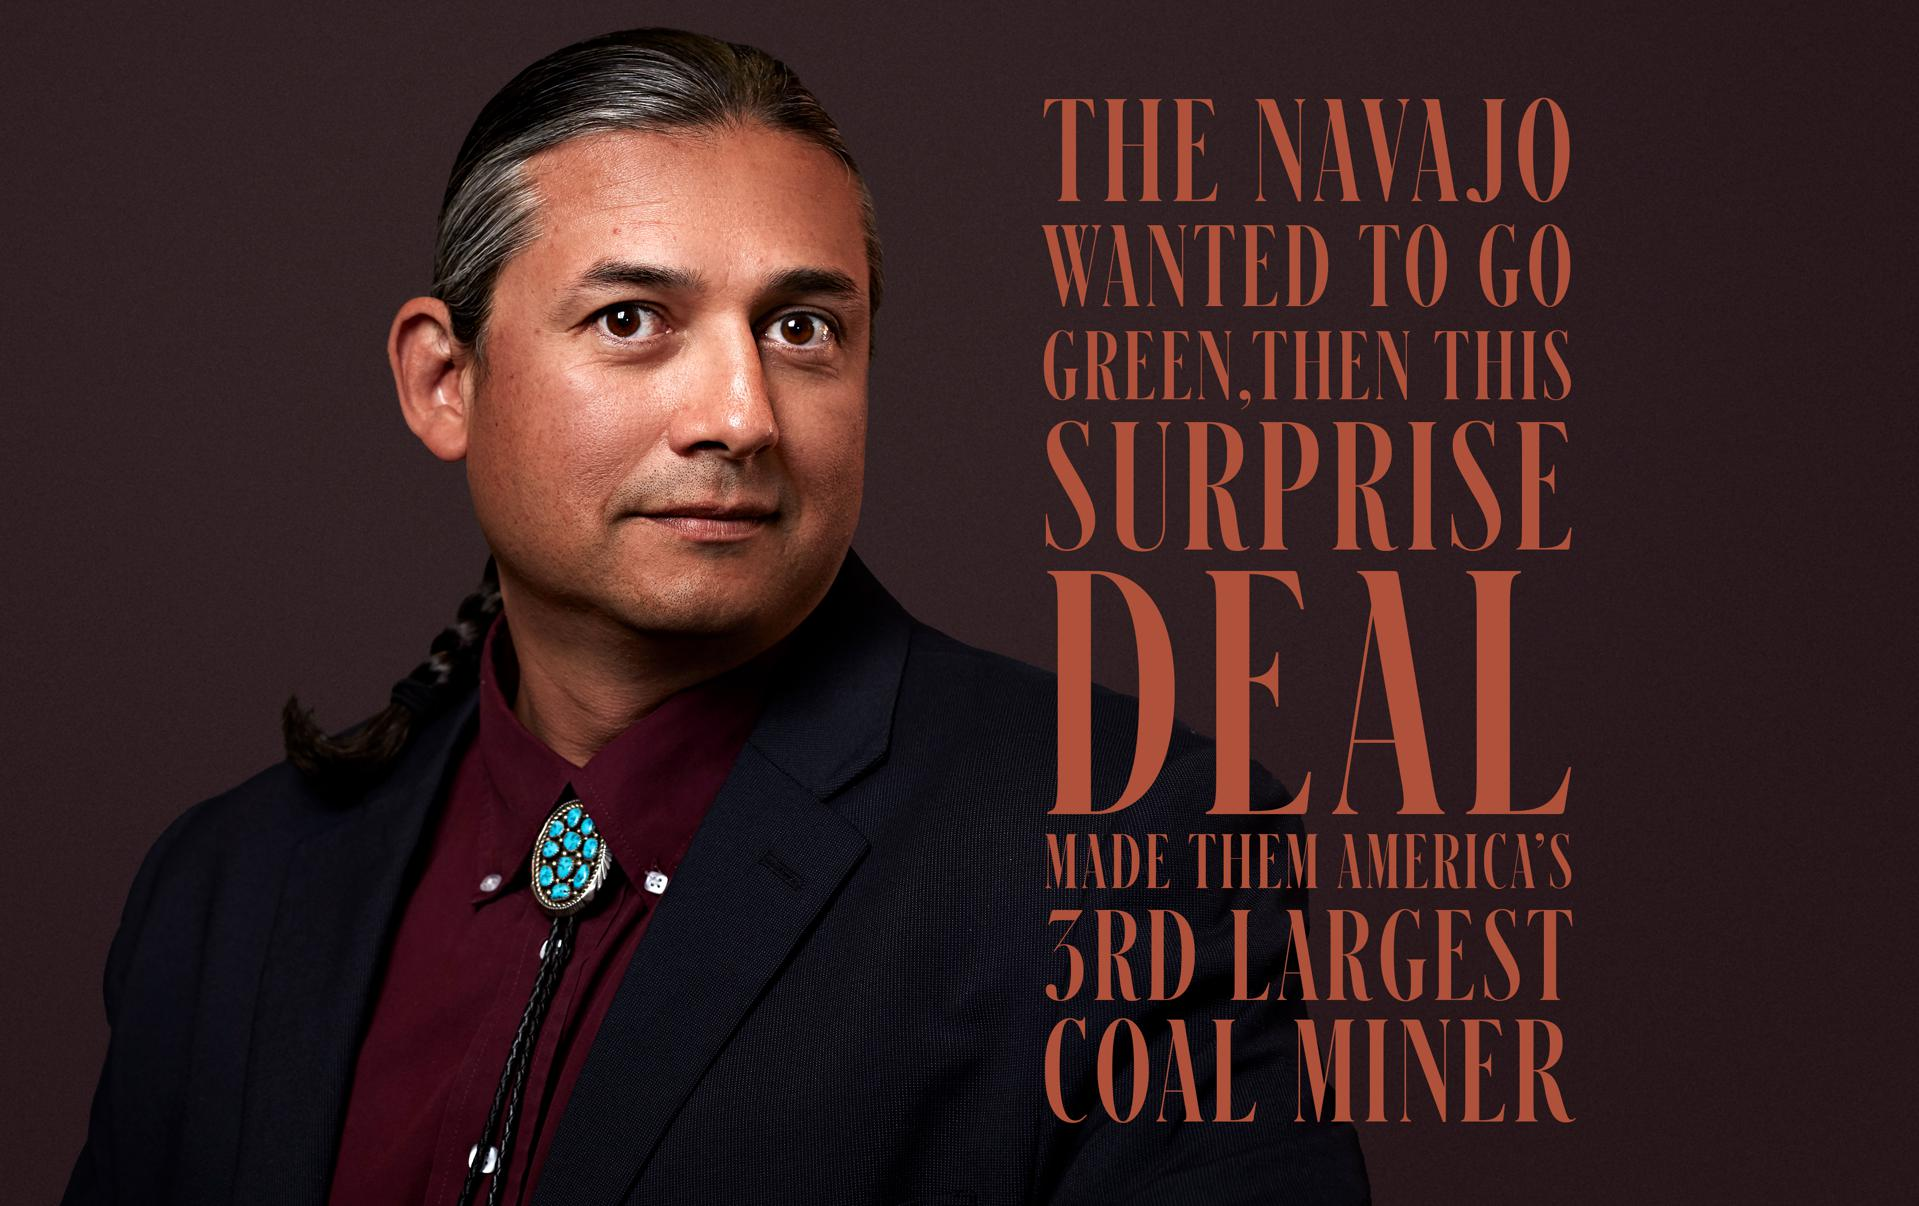 The Navajo Wanted To Go Green, Then This Surprise Deal Made Them America's Third-Largest Coal Miner